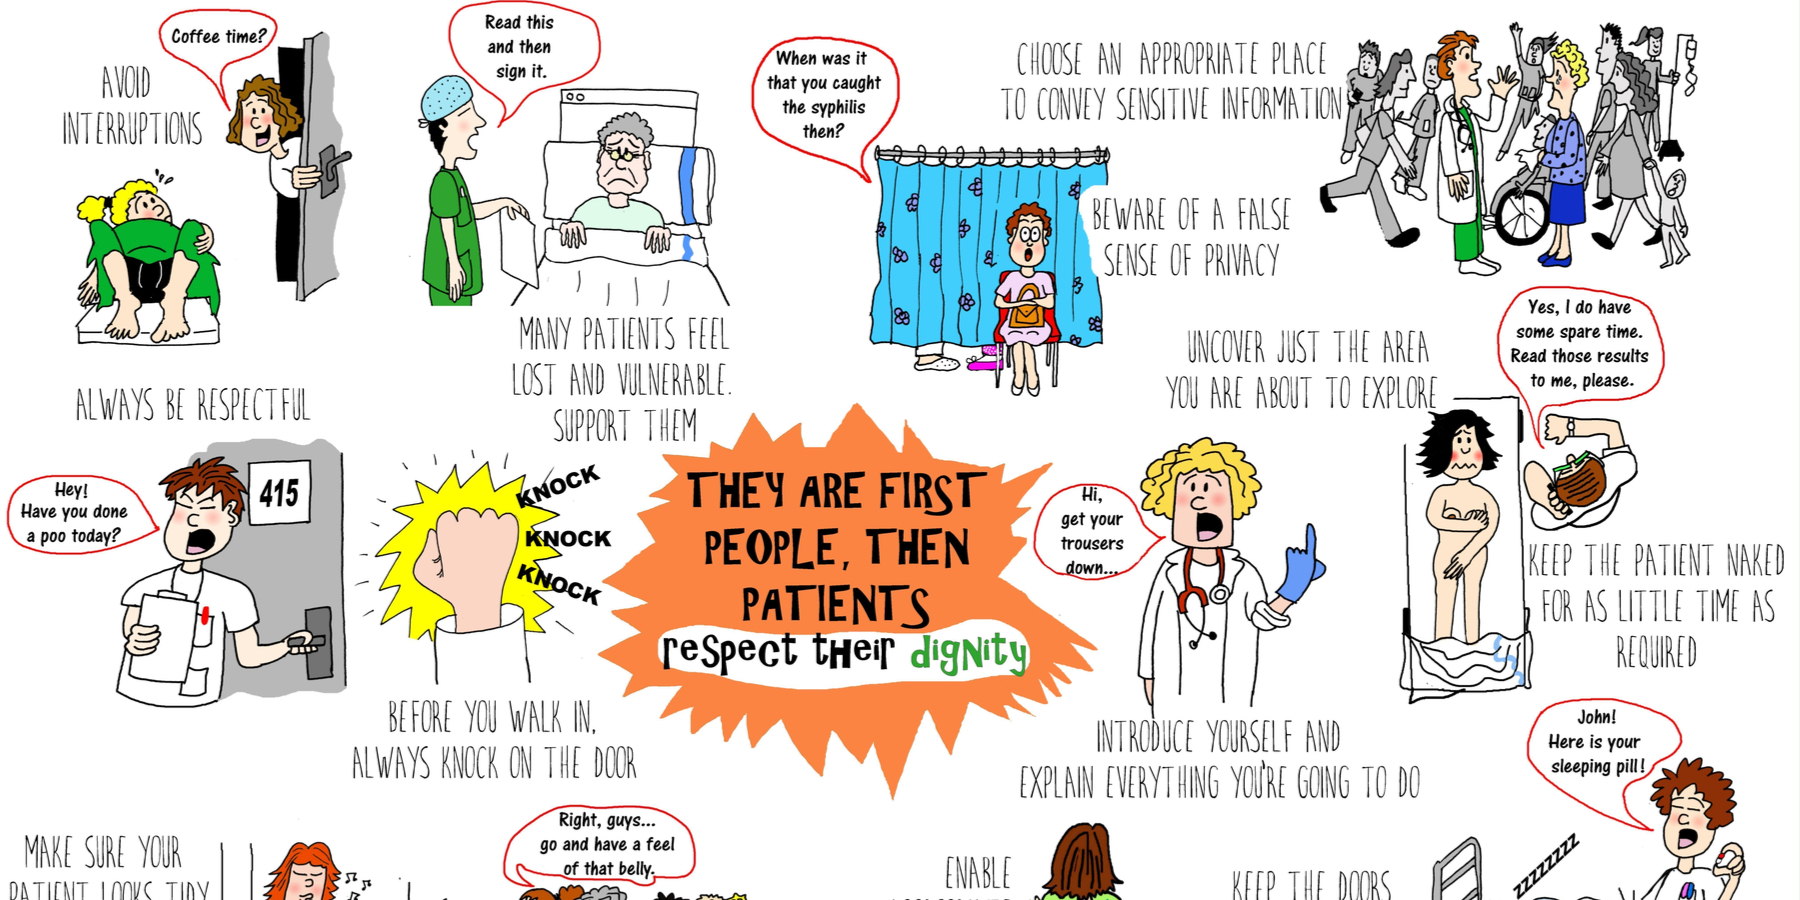 They Are People First, Then Patients